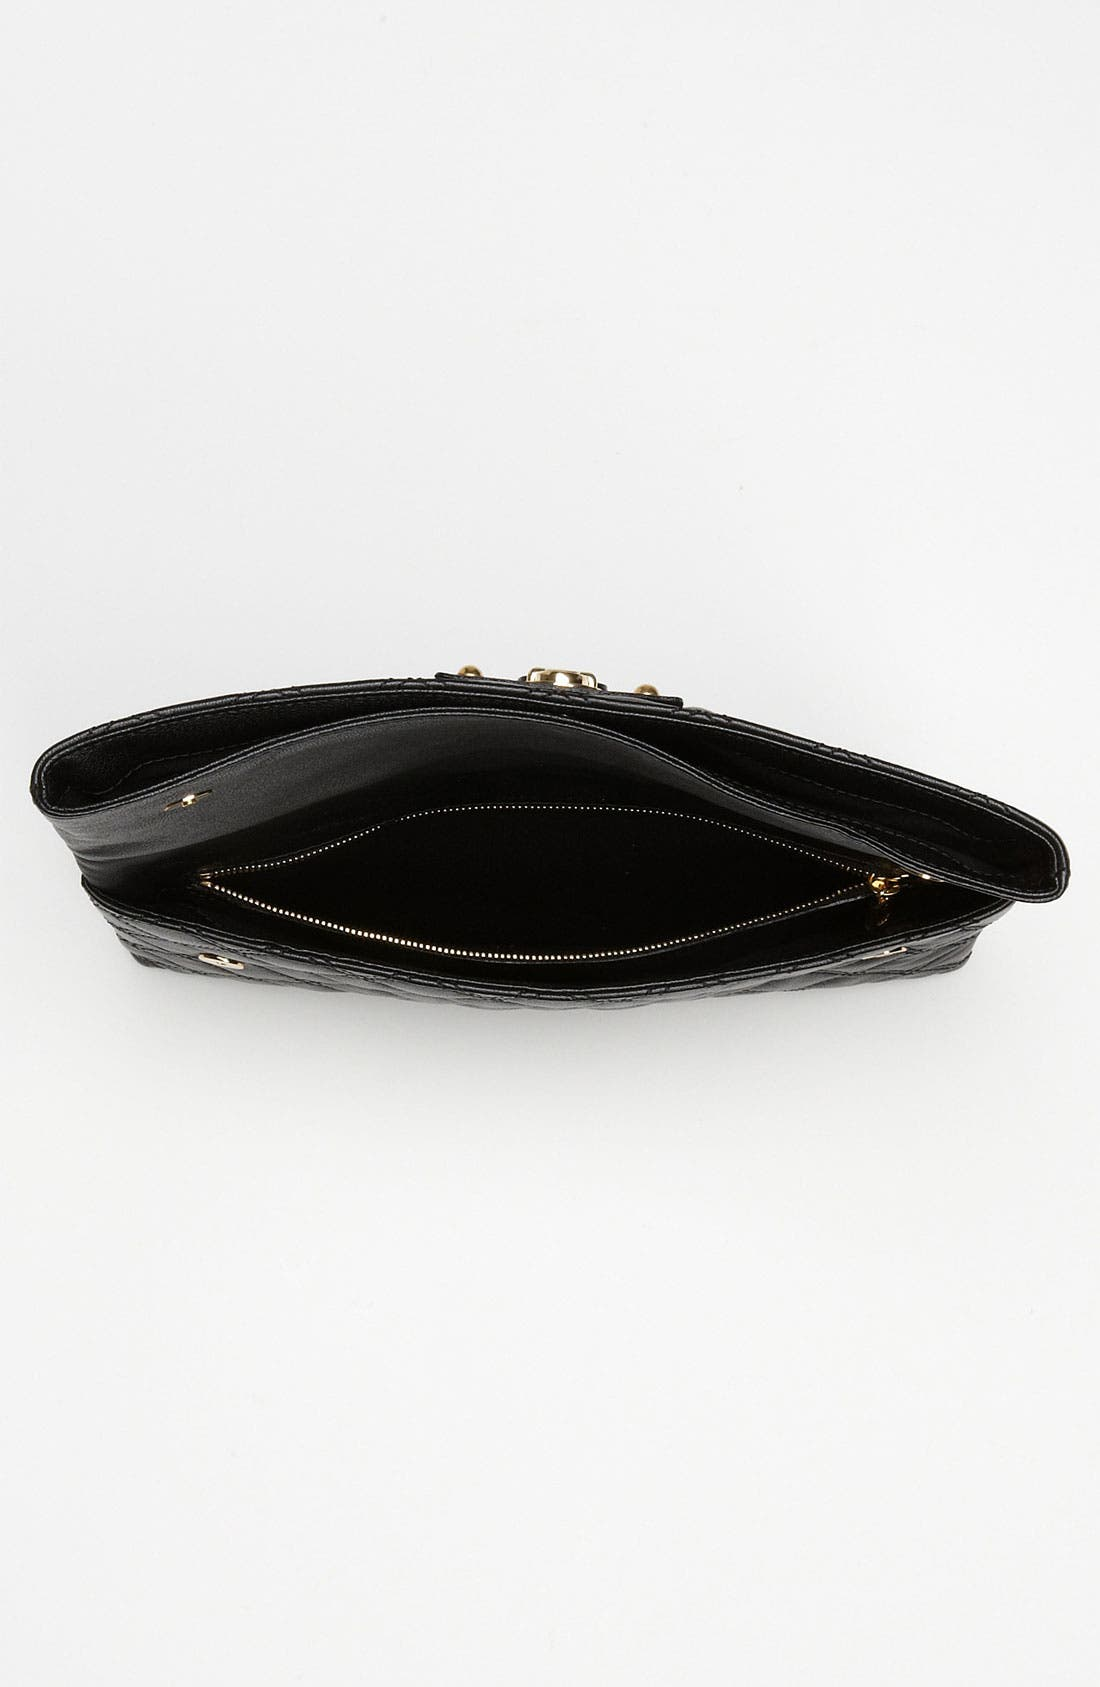 Alternate Image 3  - MARC JACOBS 'Quilting - Eugenie' Leather Clutch